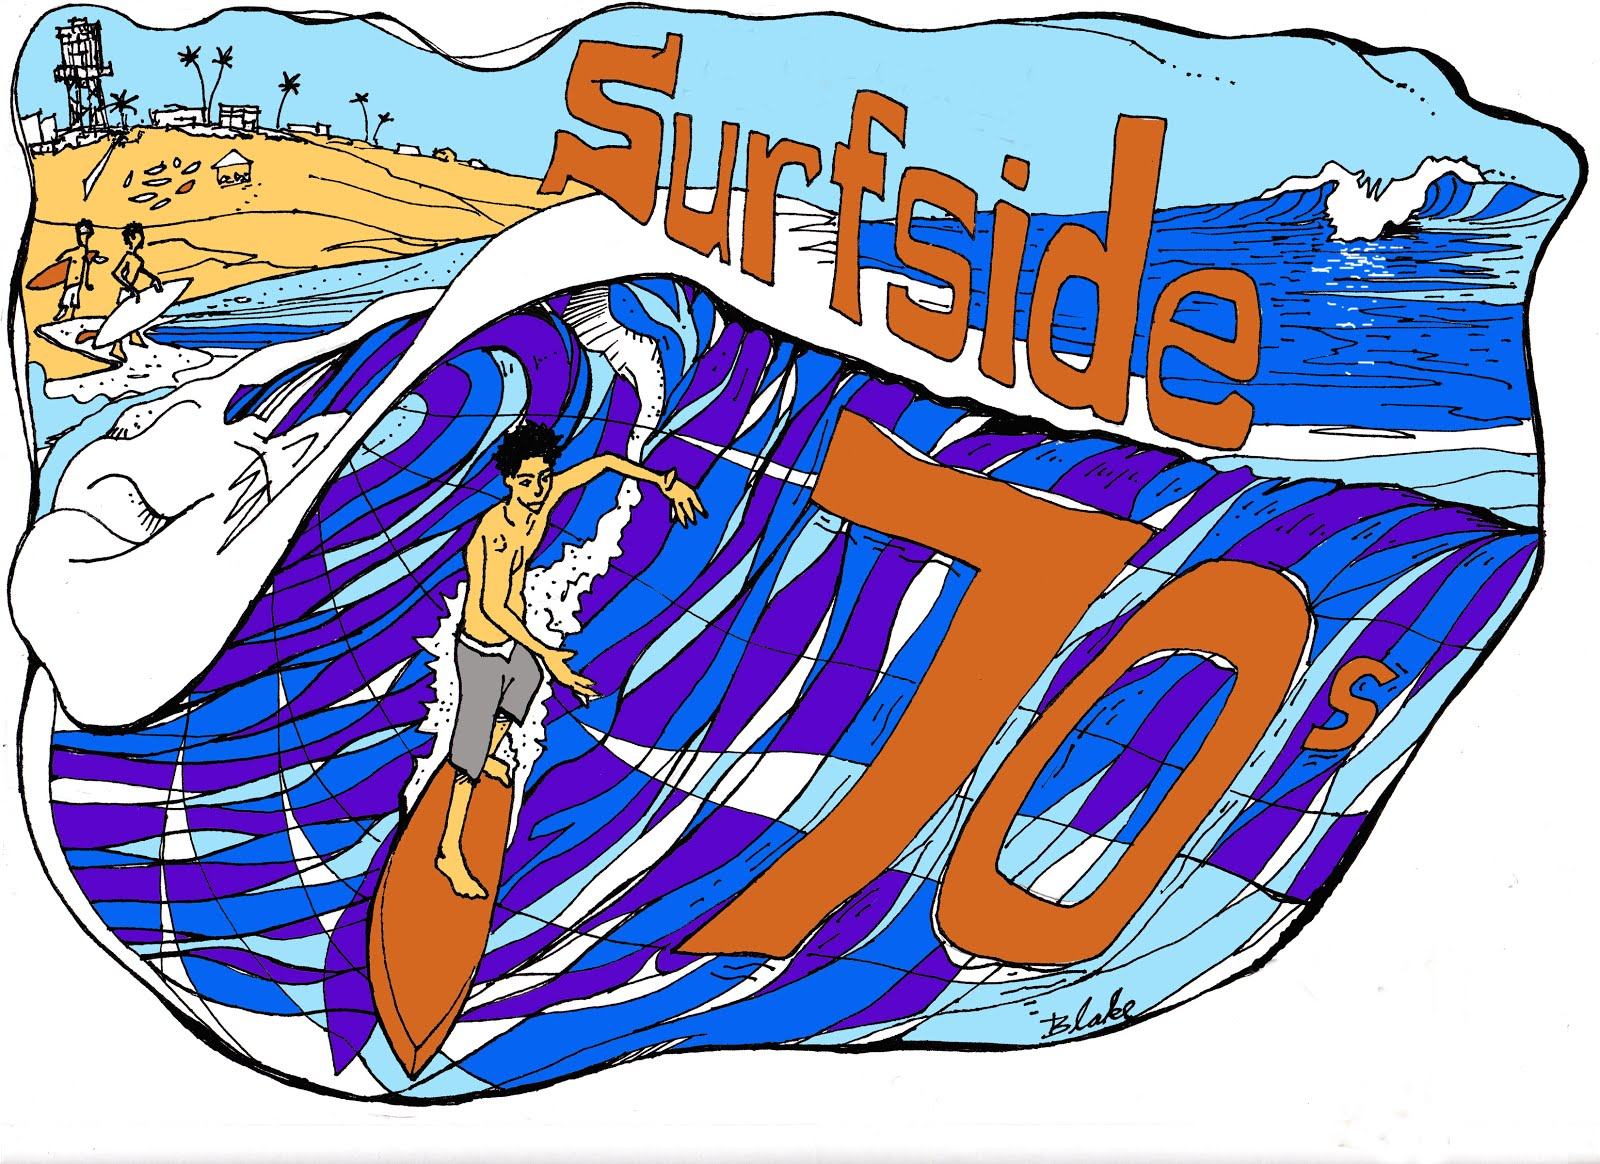 2012 14th annual Surfside Seventies poster